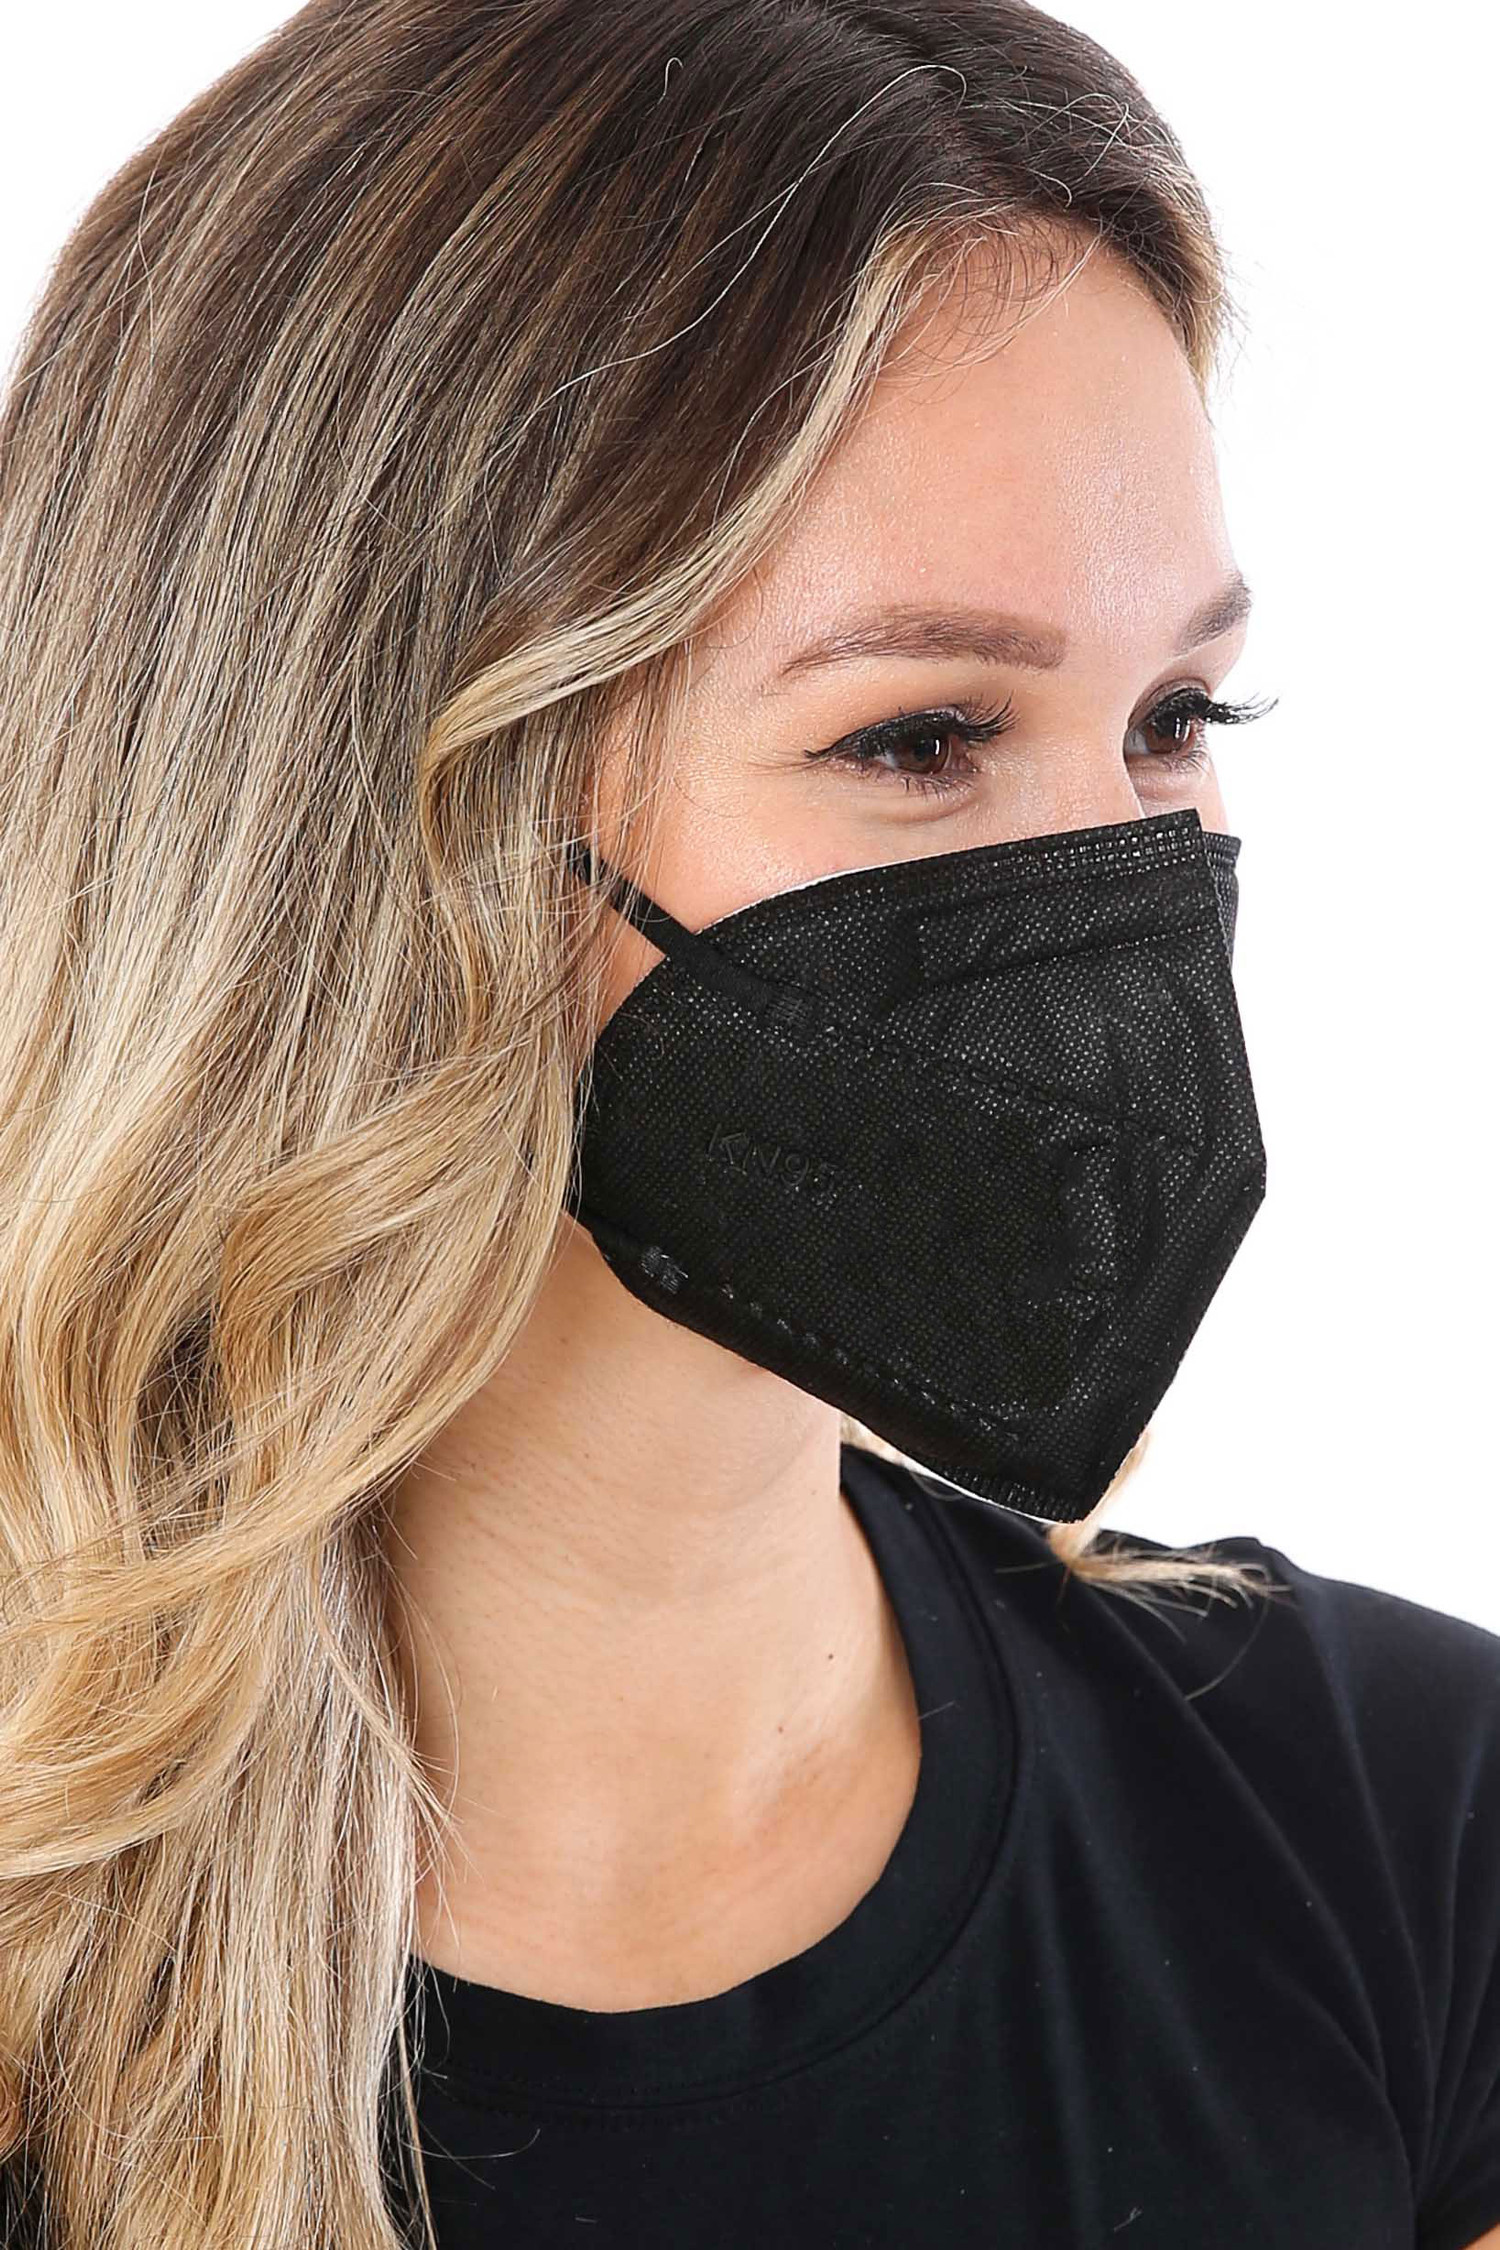 Right Side Image of Black KN95 Face Mask- Singles - Individually Wrapped